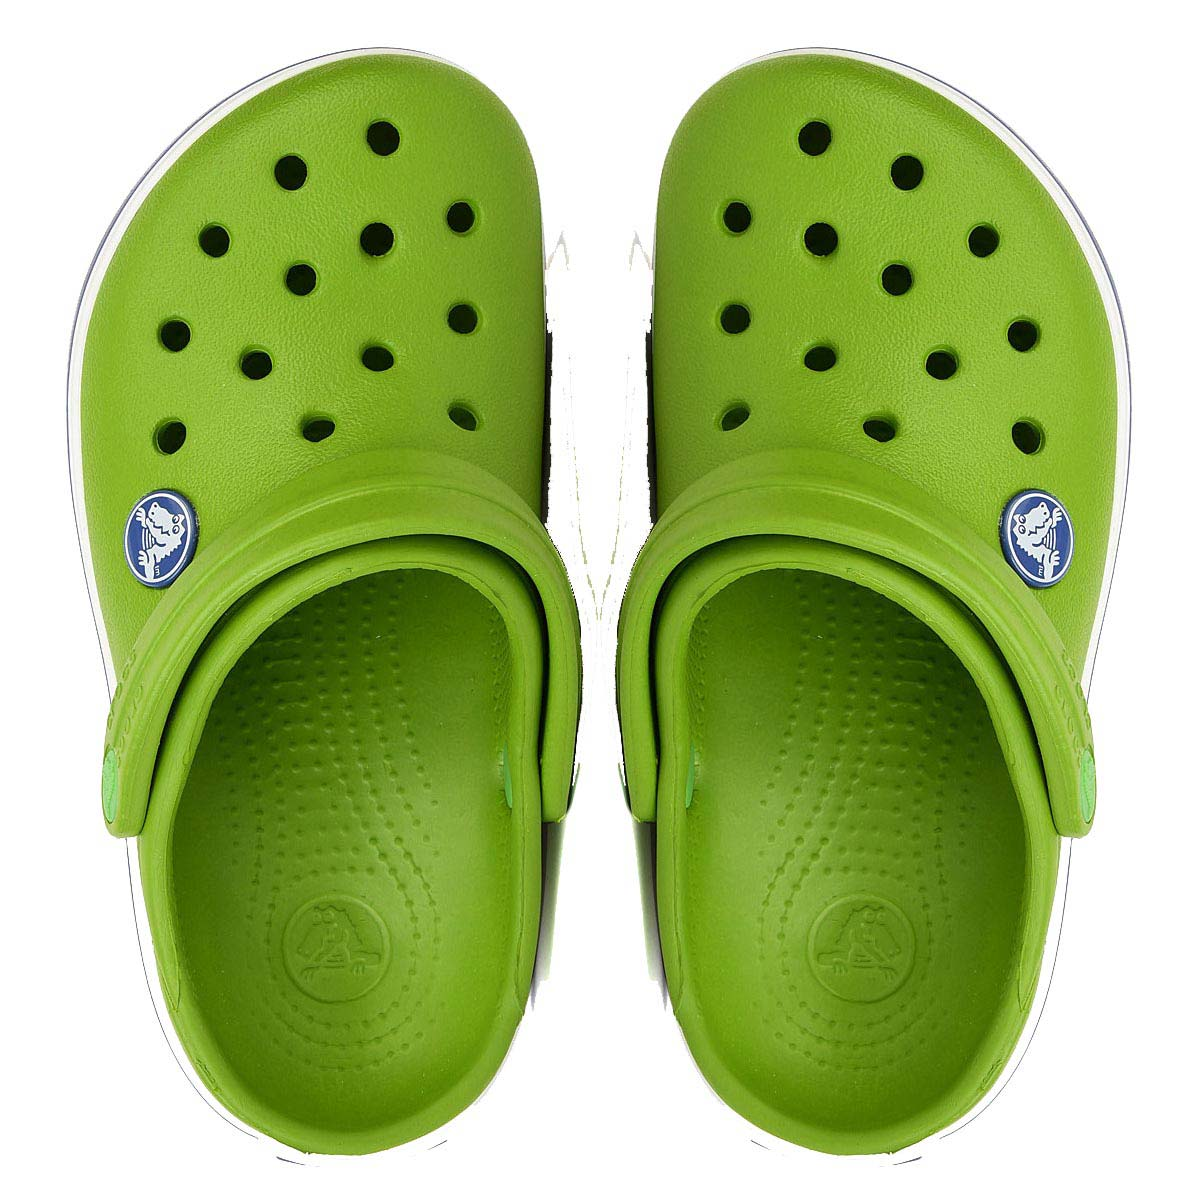 e527a8a6a Crocs Crocband Kids (Parrot Green White) Online at Lowest Price in India